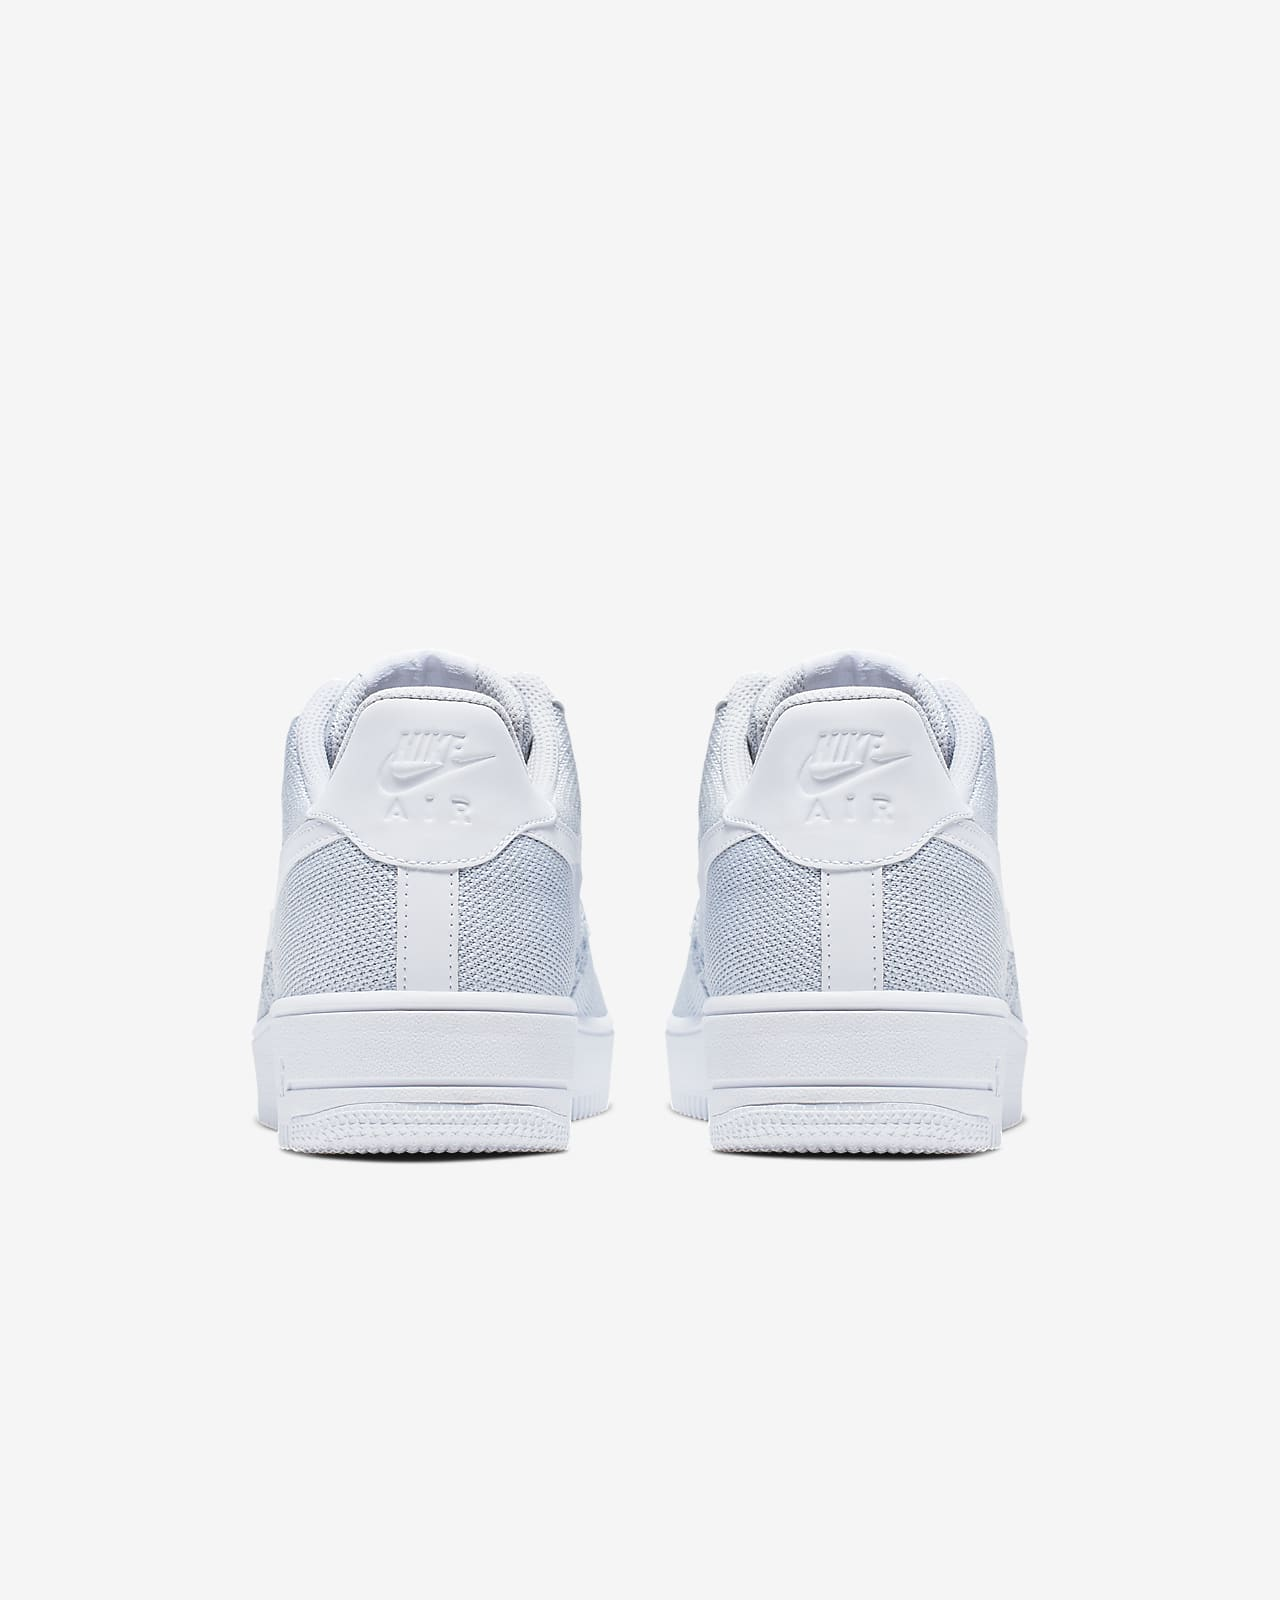 Chaussure Nike Air Force 1 Flyknit 2.0